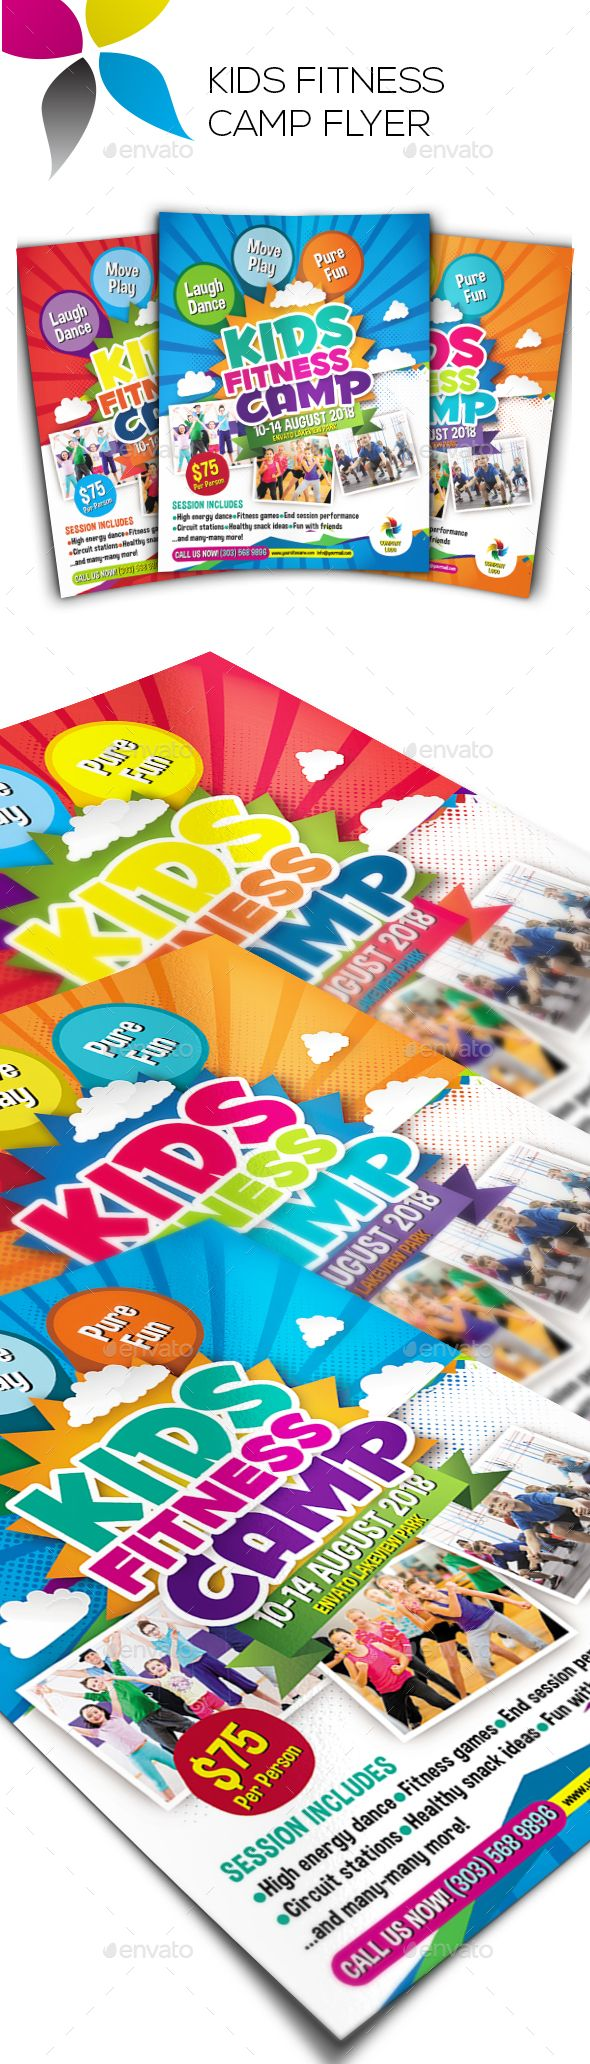 Kids Fitness Camp Flyer  Photoshop Psd Holiday Summer Camp